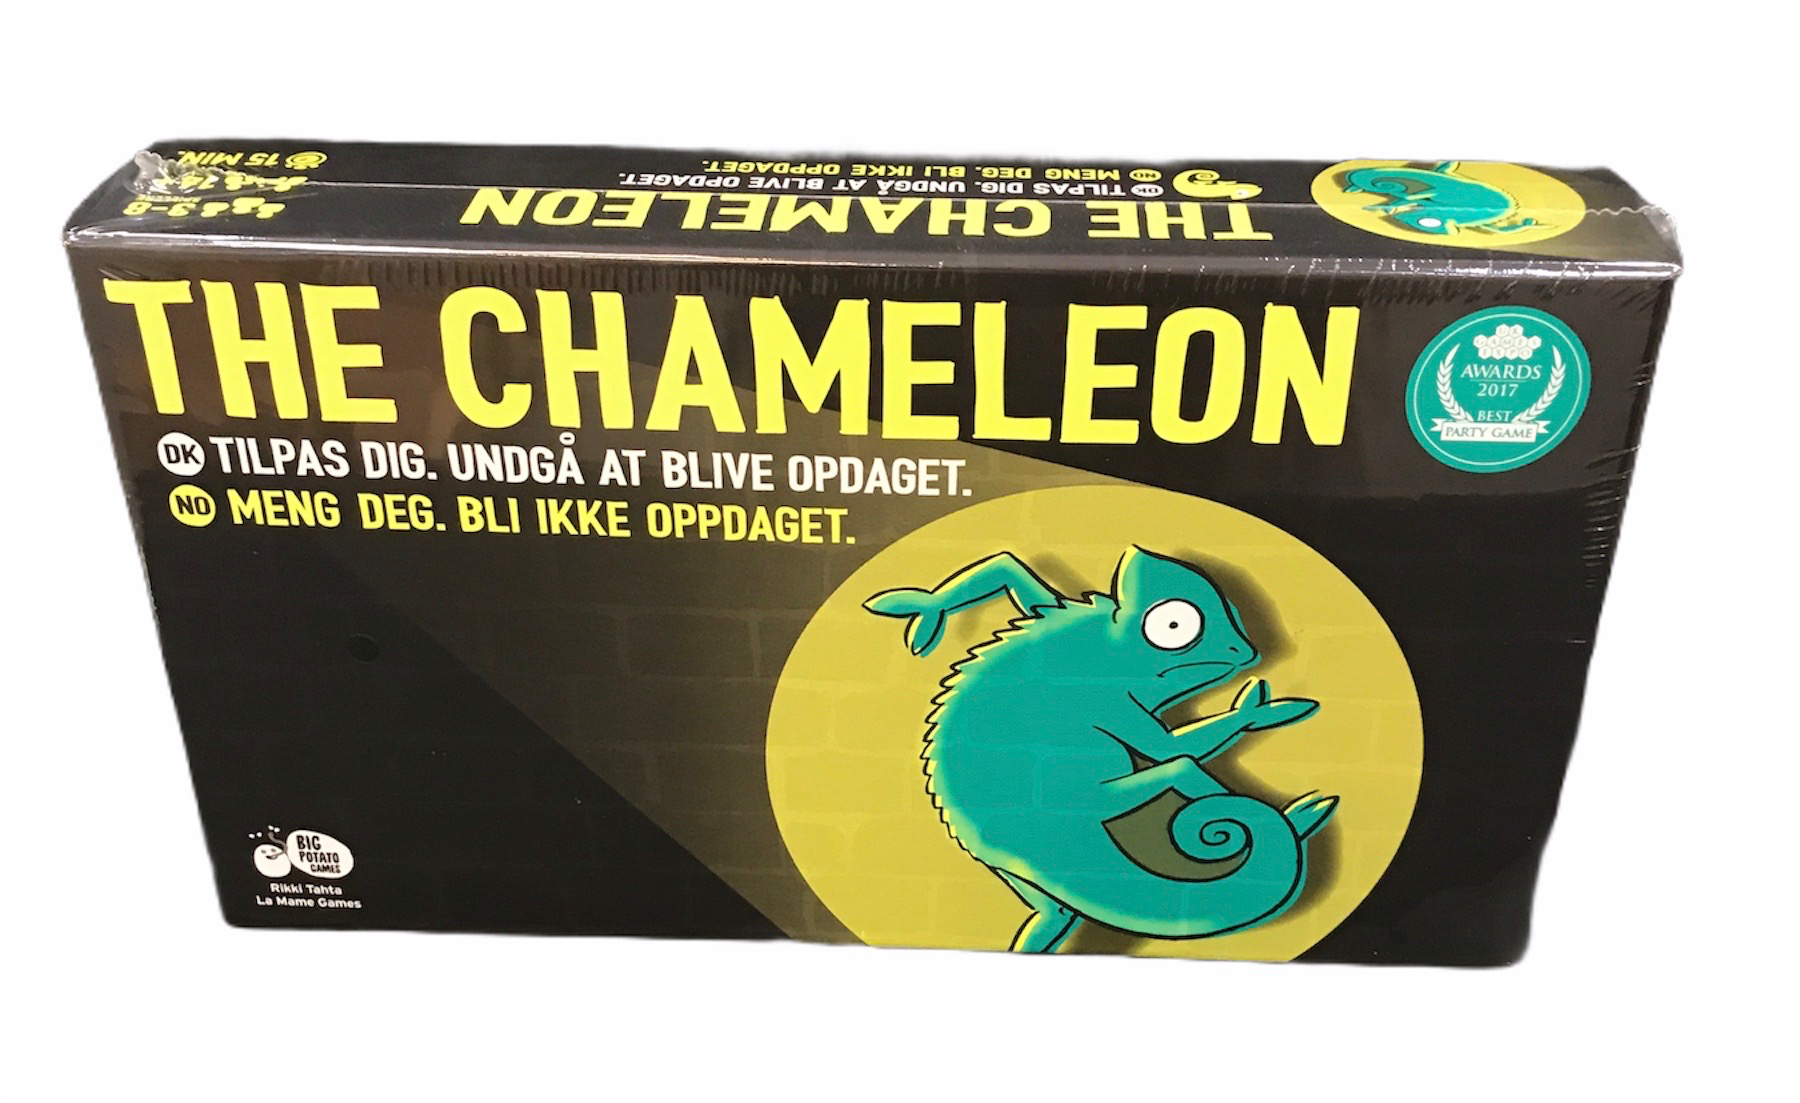 The Cameleon